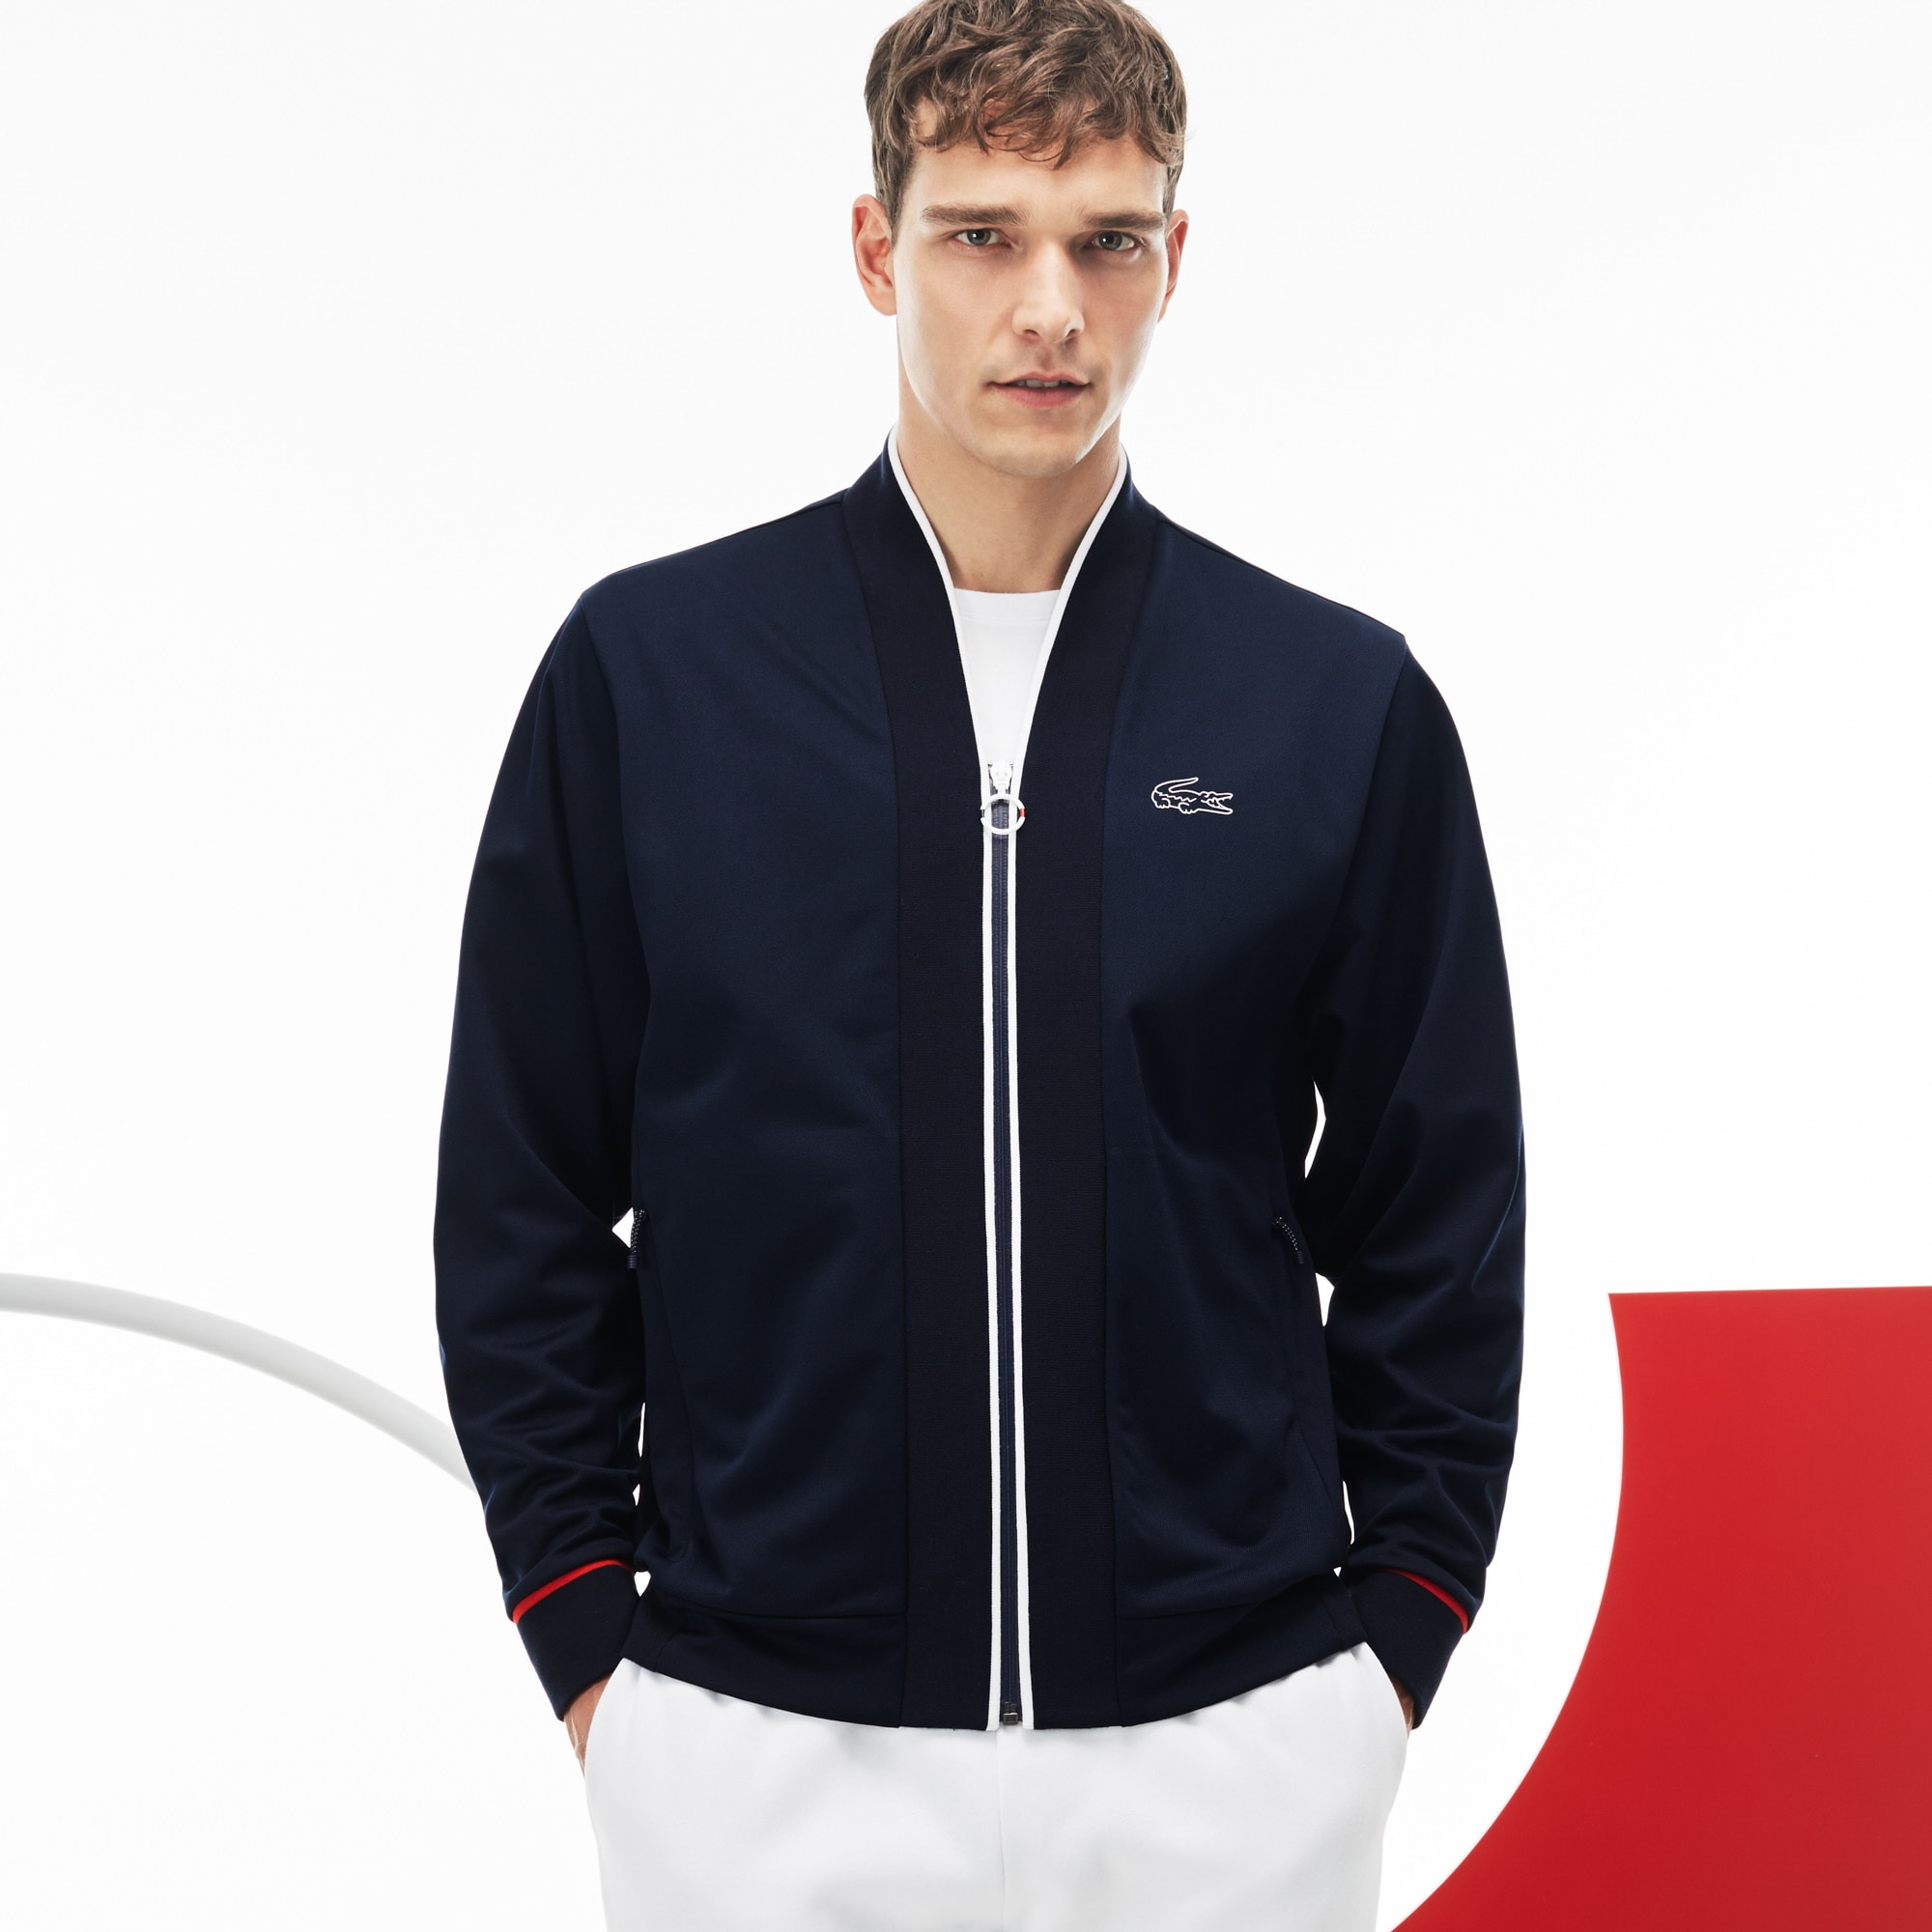 Felpa con zip Lacoste SPORT in piqué tecnico Edizione COLLECTION TRICOLORE